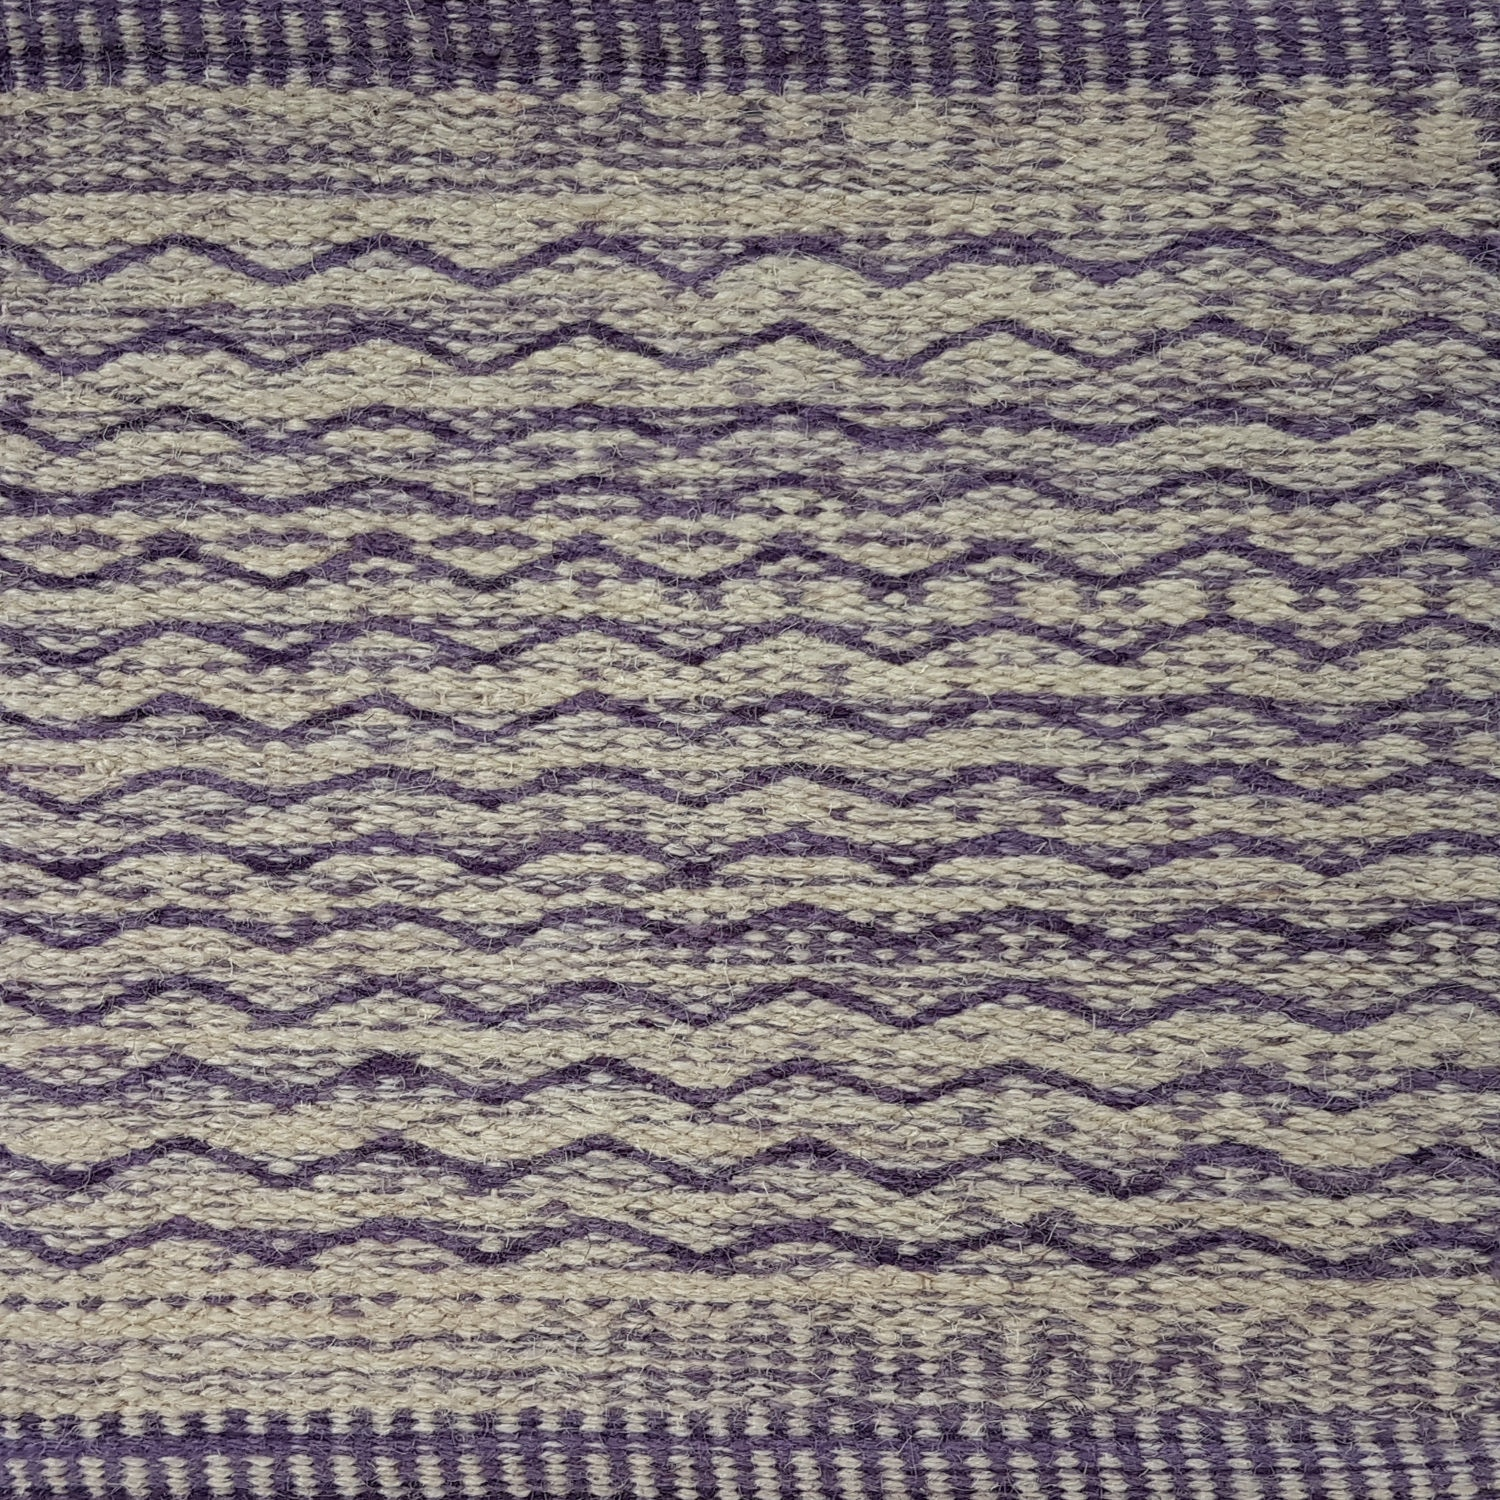 Brunschwig Carpet V3-19748/Sp.Lilac CB-102360.LILAC.0